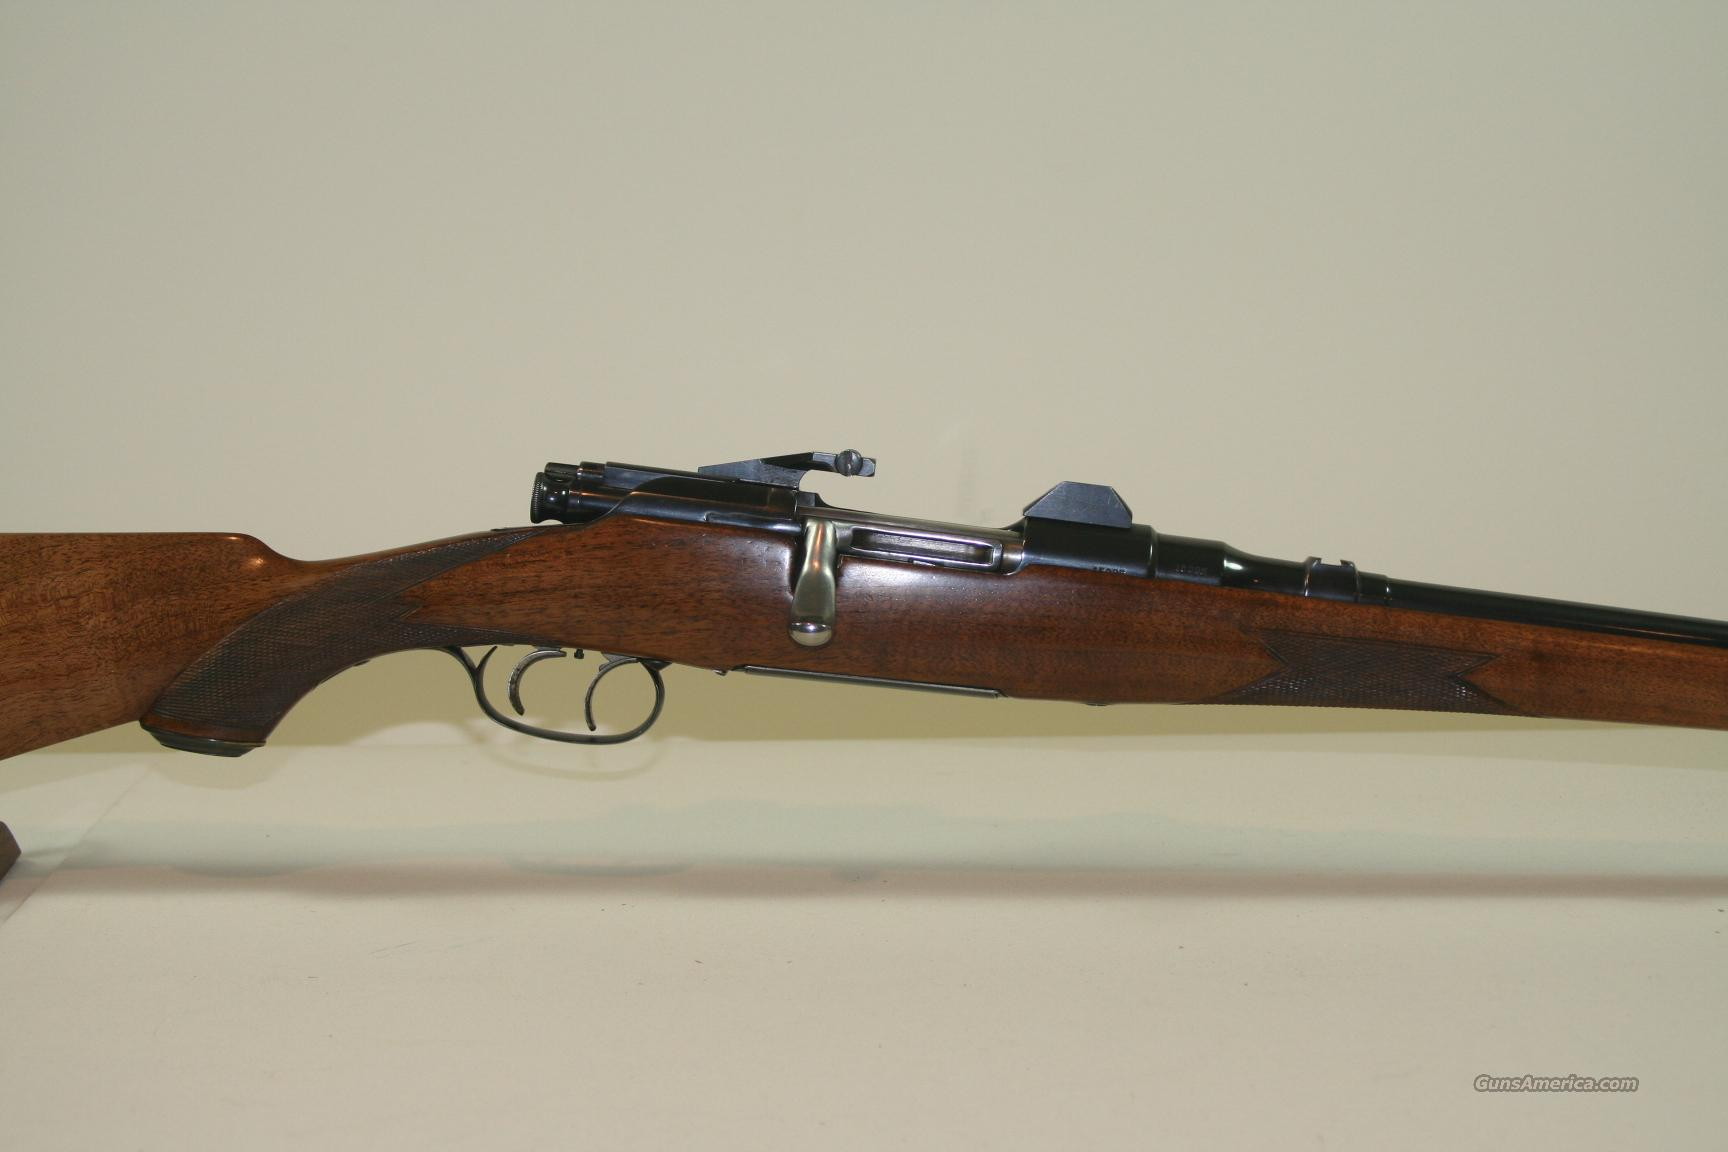 Mannlicher Schoenauer 6.5 X 54 Full Stock Rifle  Guns > Rifles > Mannlicher-Schoenauer Rifles